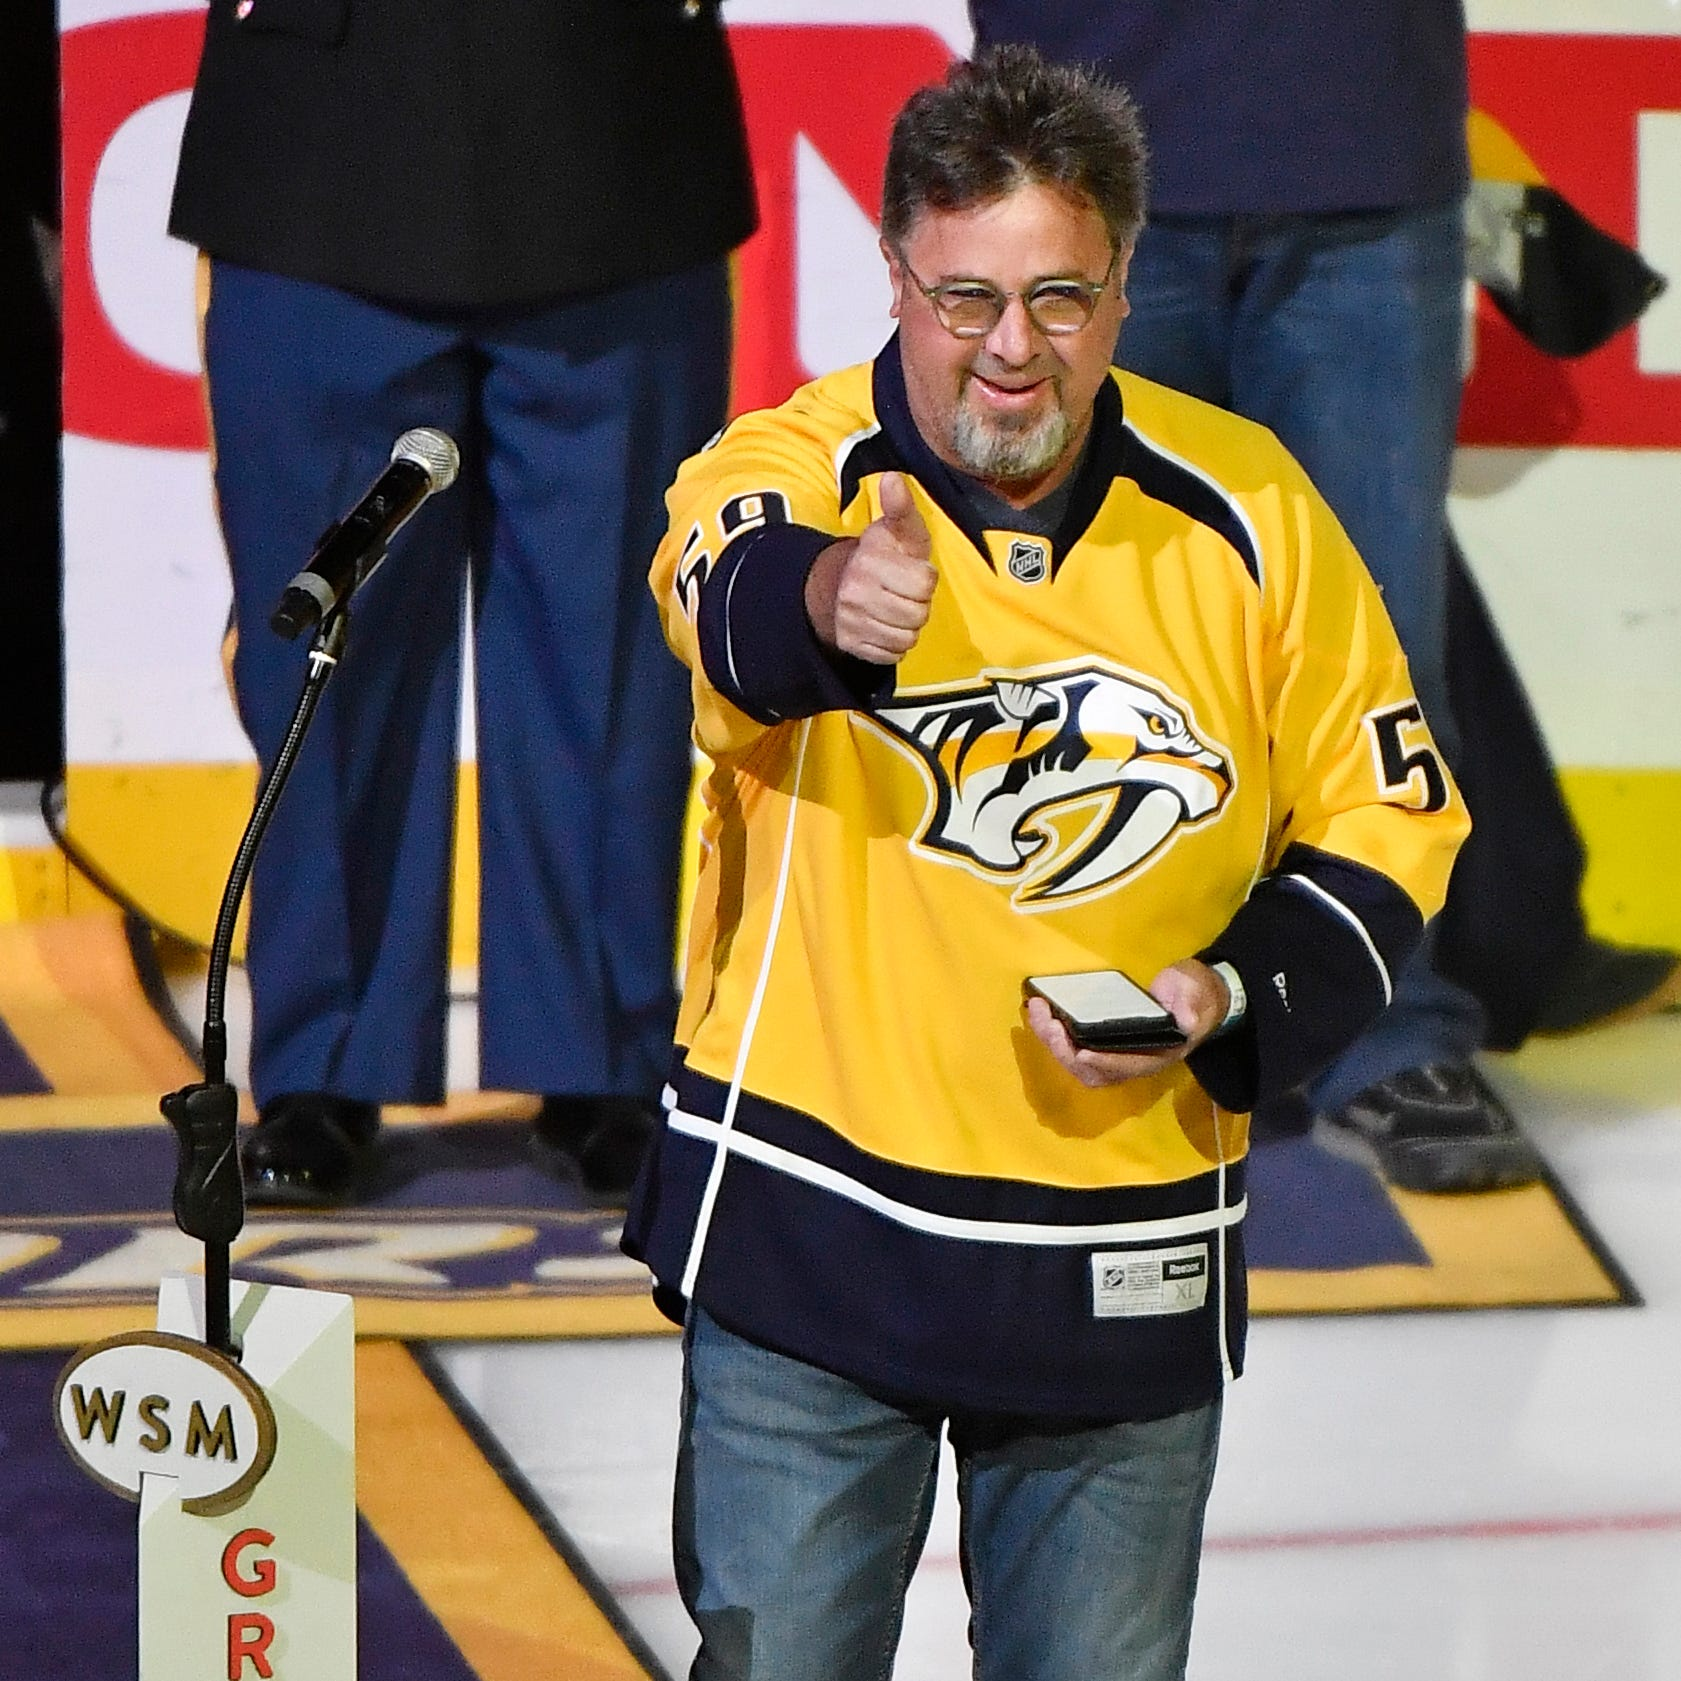 Predators anthem singer: Vince Gill performs before Game 2 against the Stars on Saturday